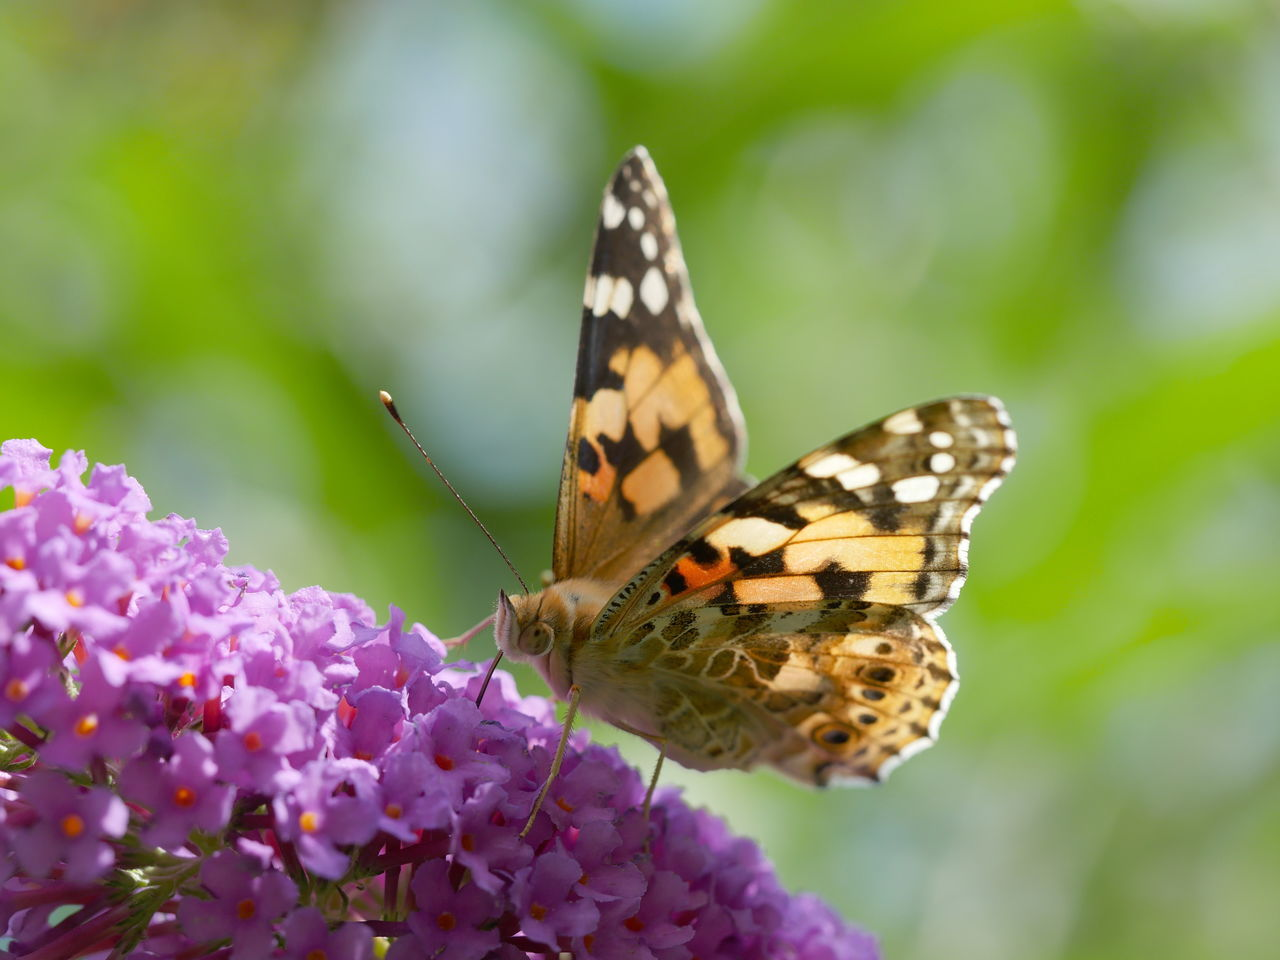 Painted Lady - Distelfalter Beauty In Nature Bokeh Fragility Insect Macro Nature No People Outdoors Painted Lady Pollination Macro Nature Close-up Exceptional Photographs From My Point Of View Animal Themes Distelfalter Capture The Moment EyeEm Nature Lover Animals Animals In The Wild Butterfly Taking Photos Animal Wing